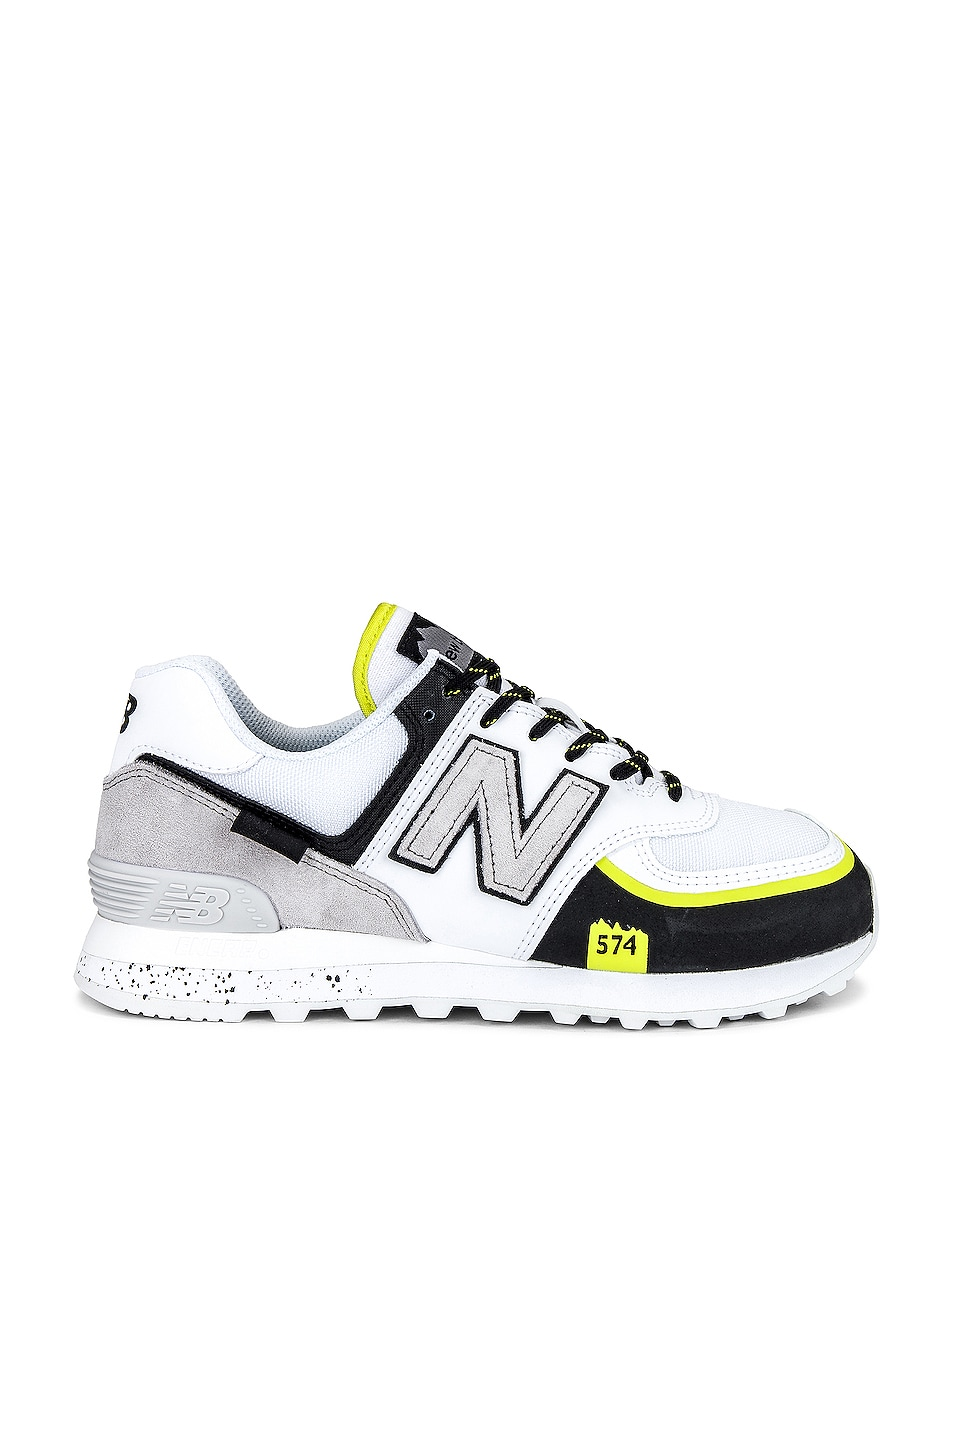 Image 1 of New Balance 574 Sneakers in White & Black